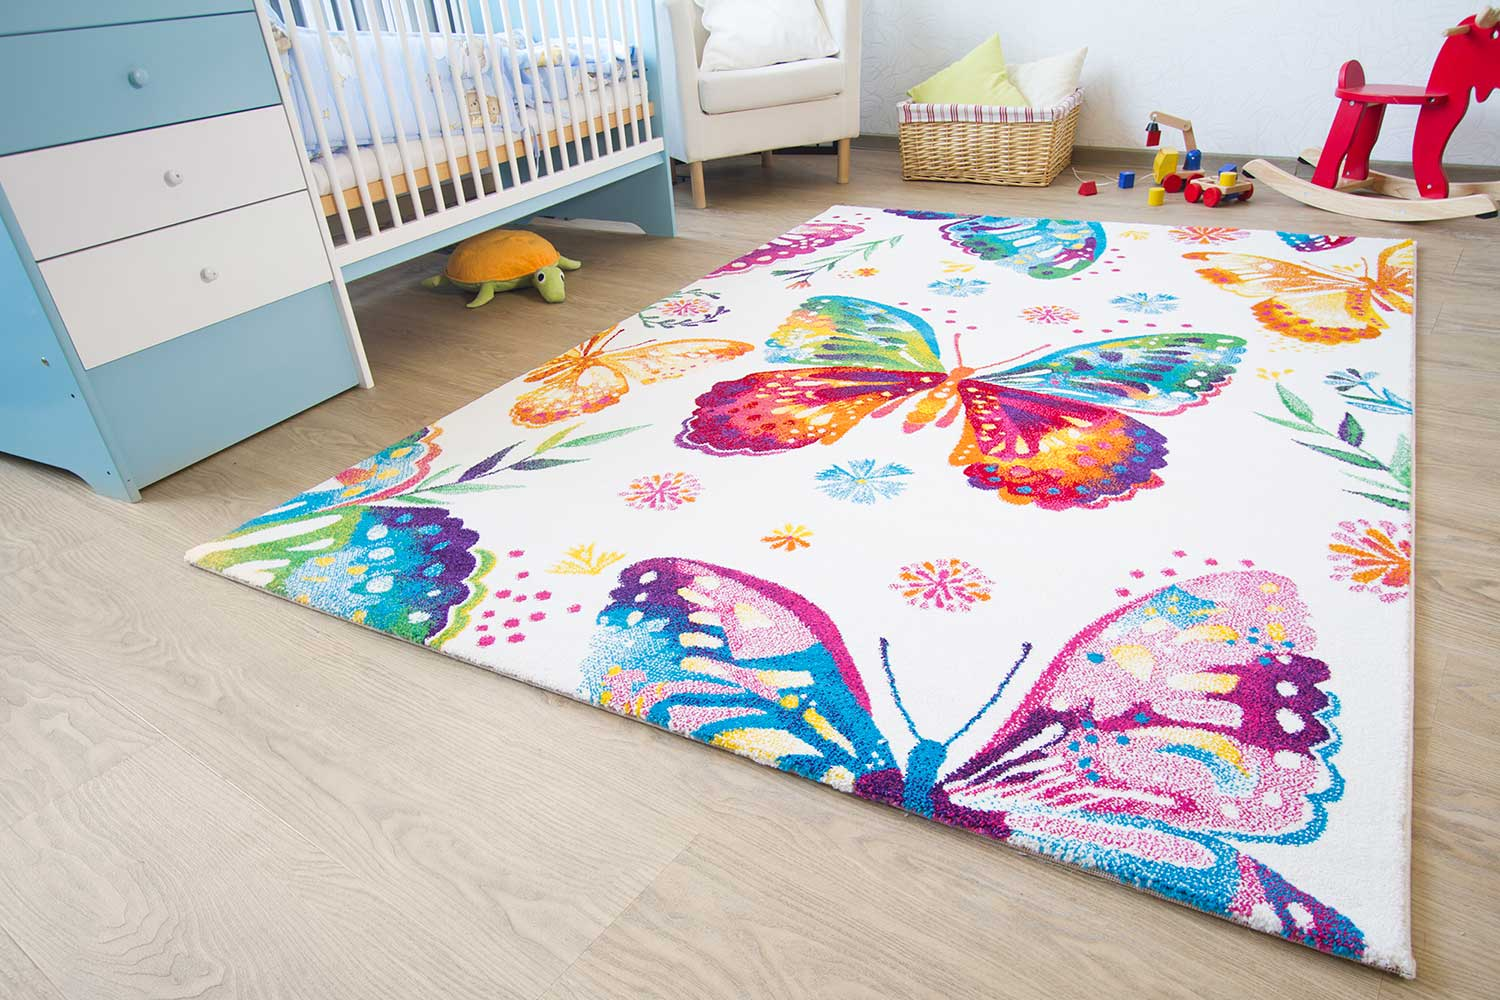 kinderteppich little carpet vogel theo global carpet. Black Bedroom Furniture Sets. Home Design Ideas